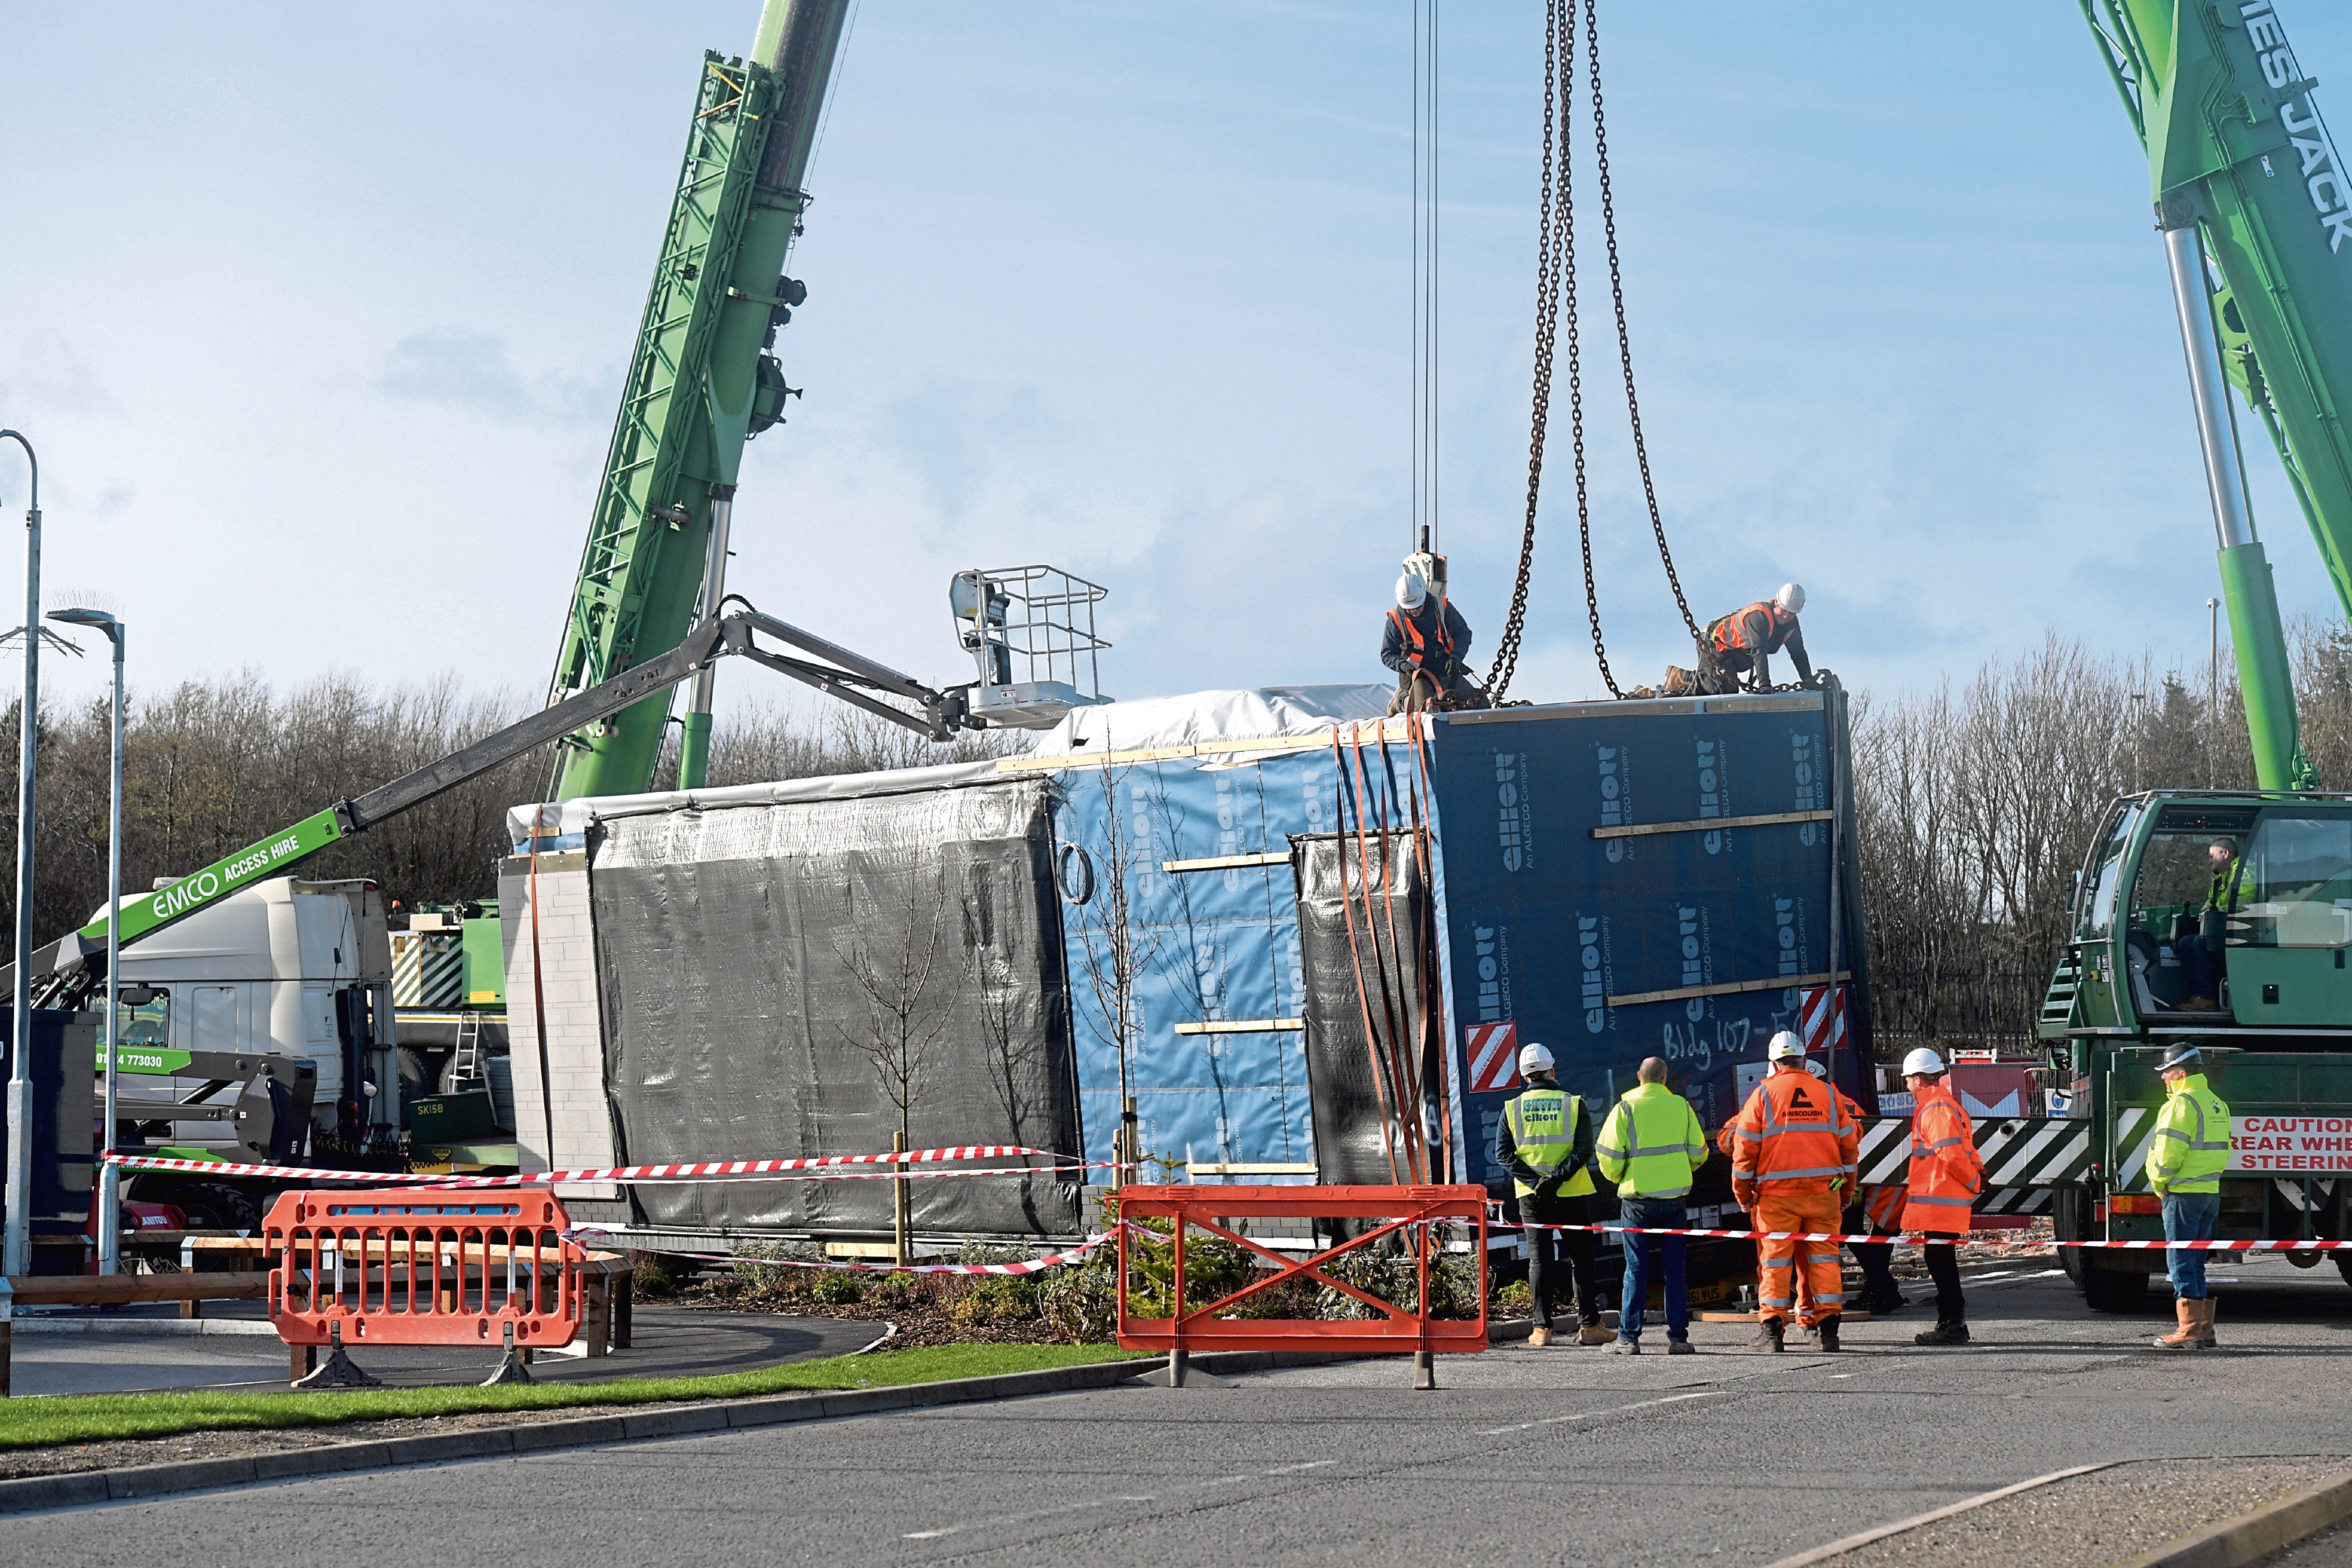 Cranes were required to lift the load and help free the lorry